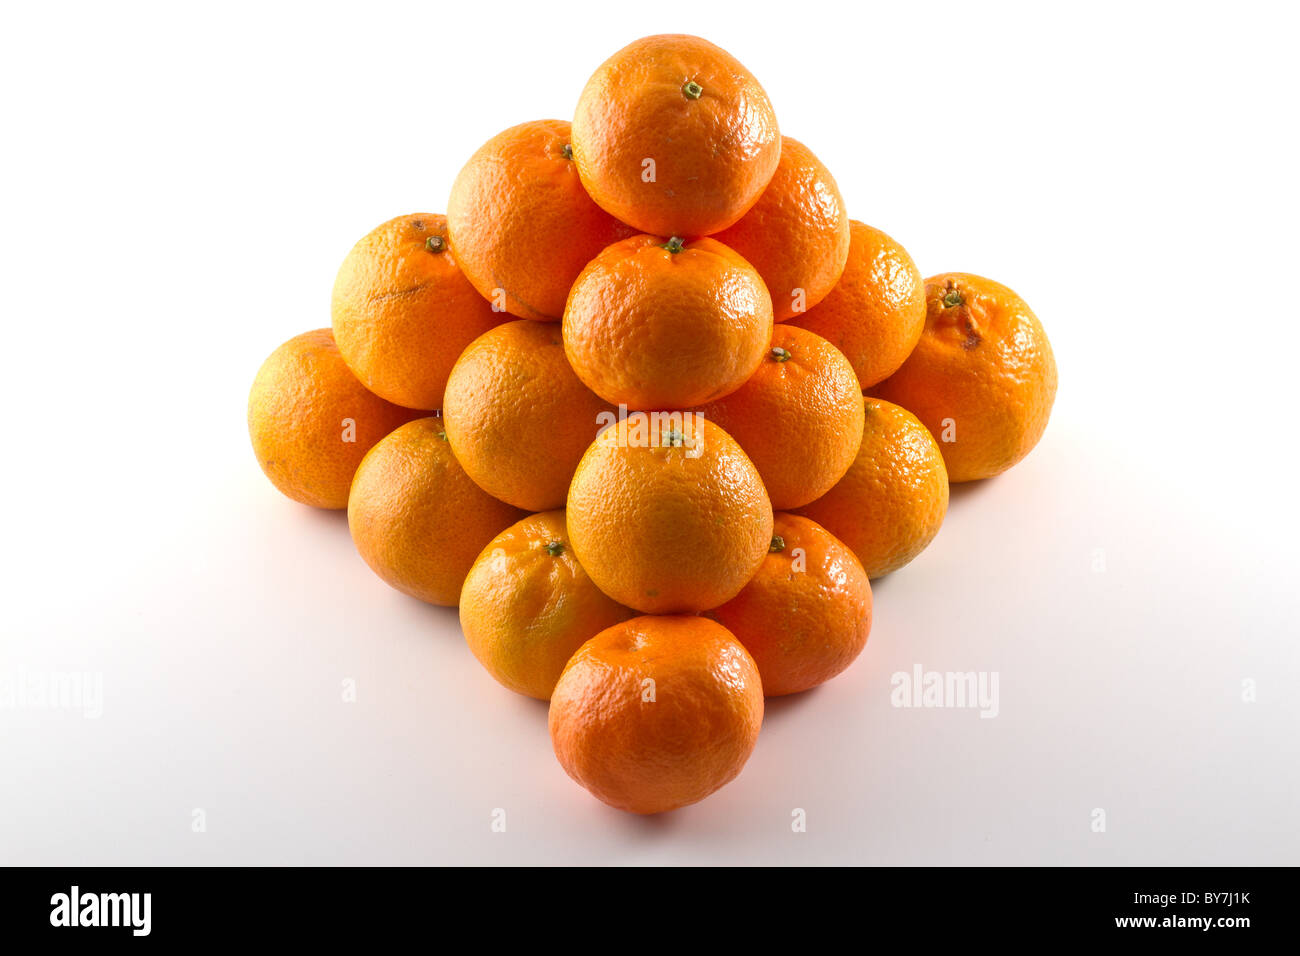 Clementines arranged in a pyramid shape isolated on white background - Stock Image